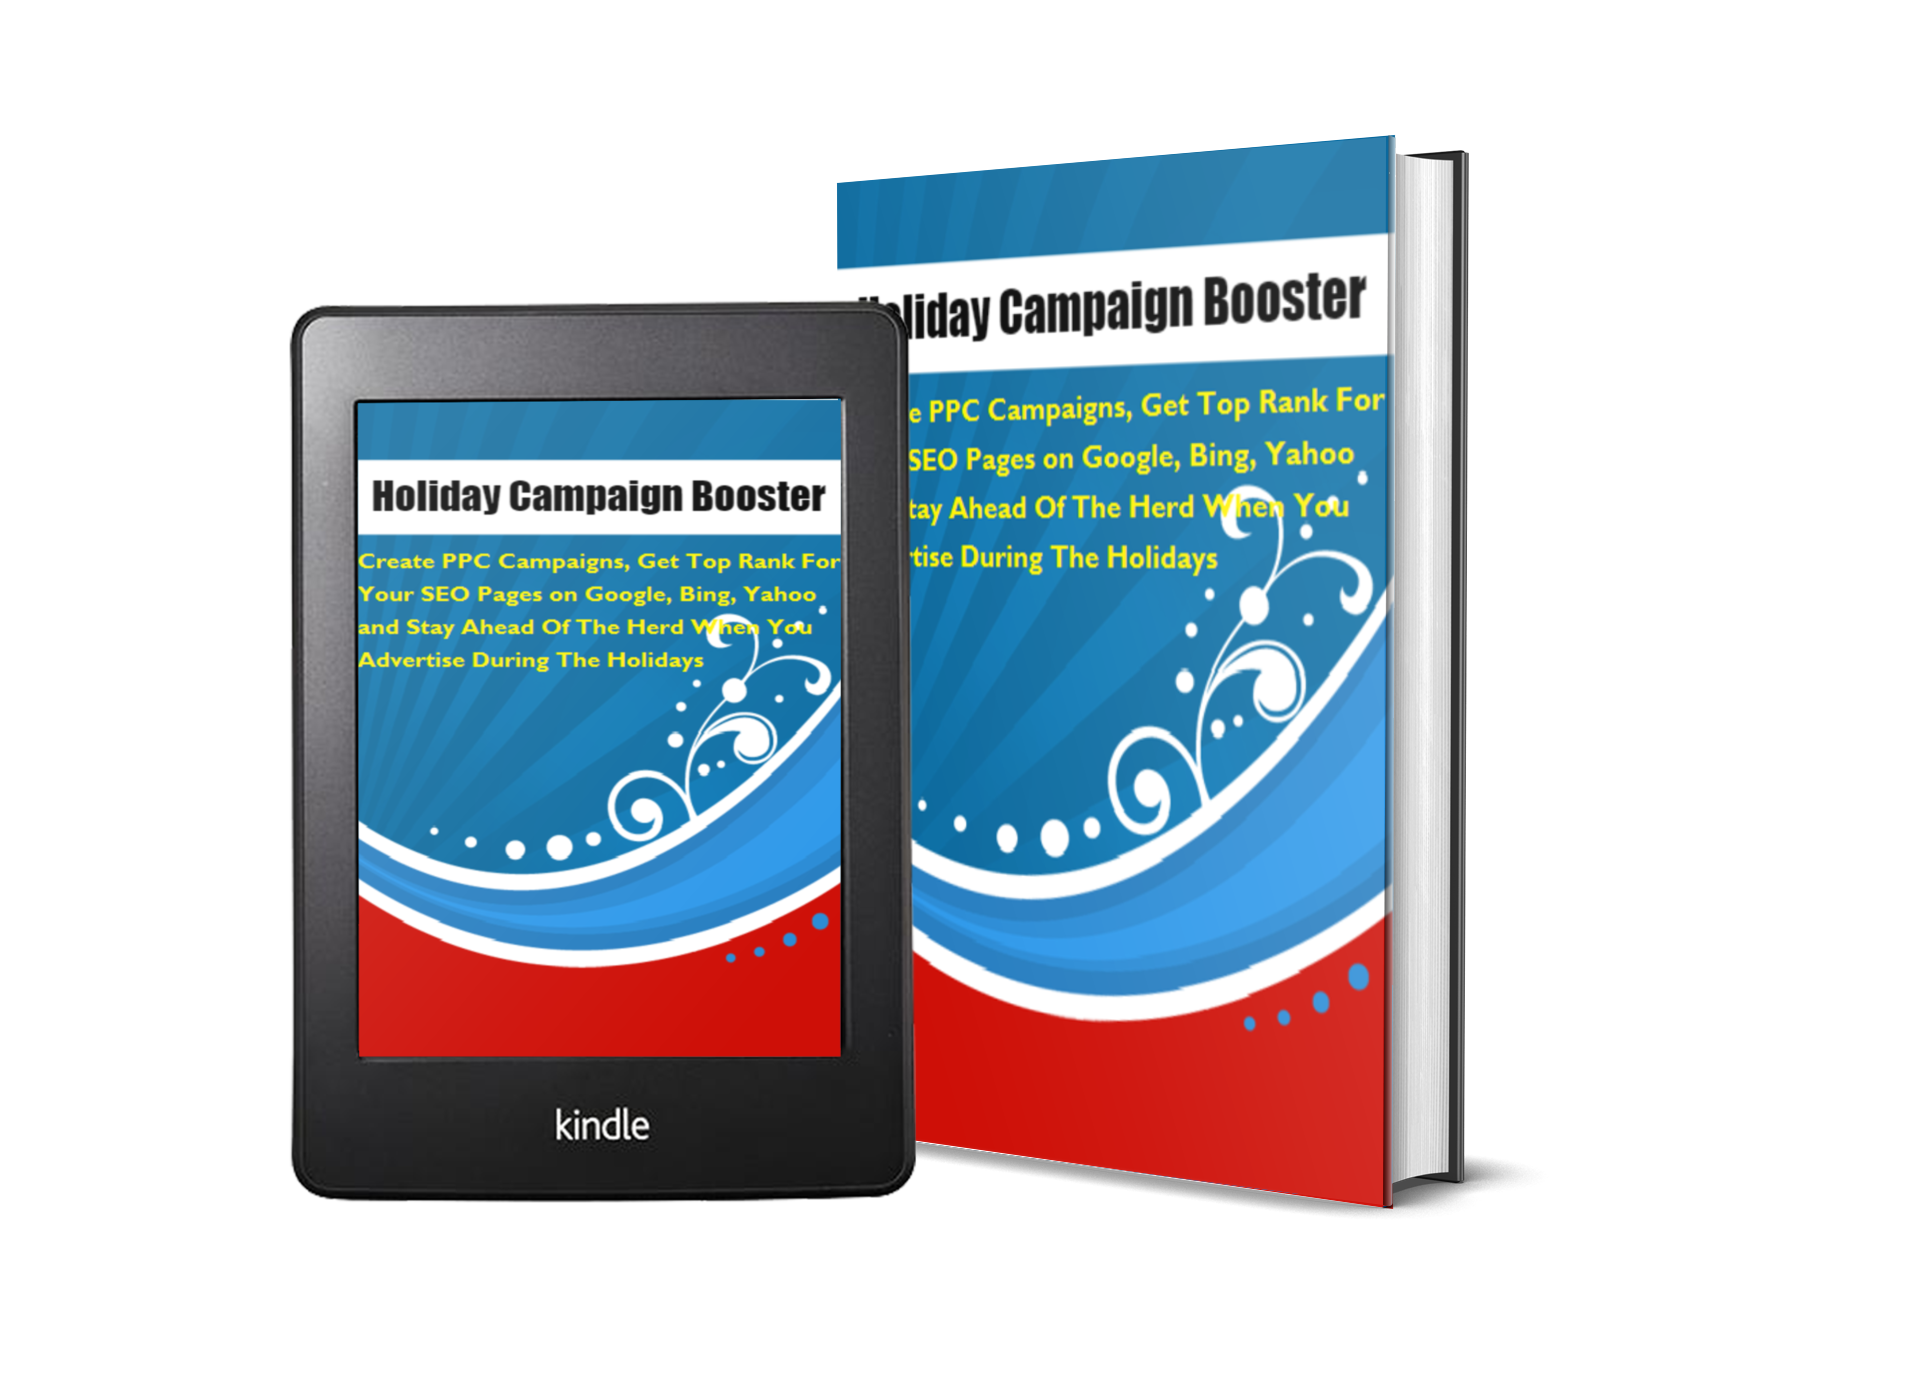 Holiday Campaign Booster WSO 1